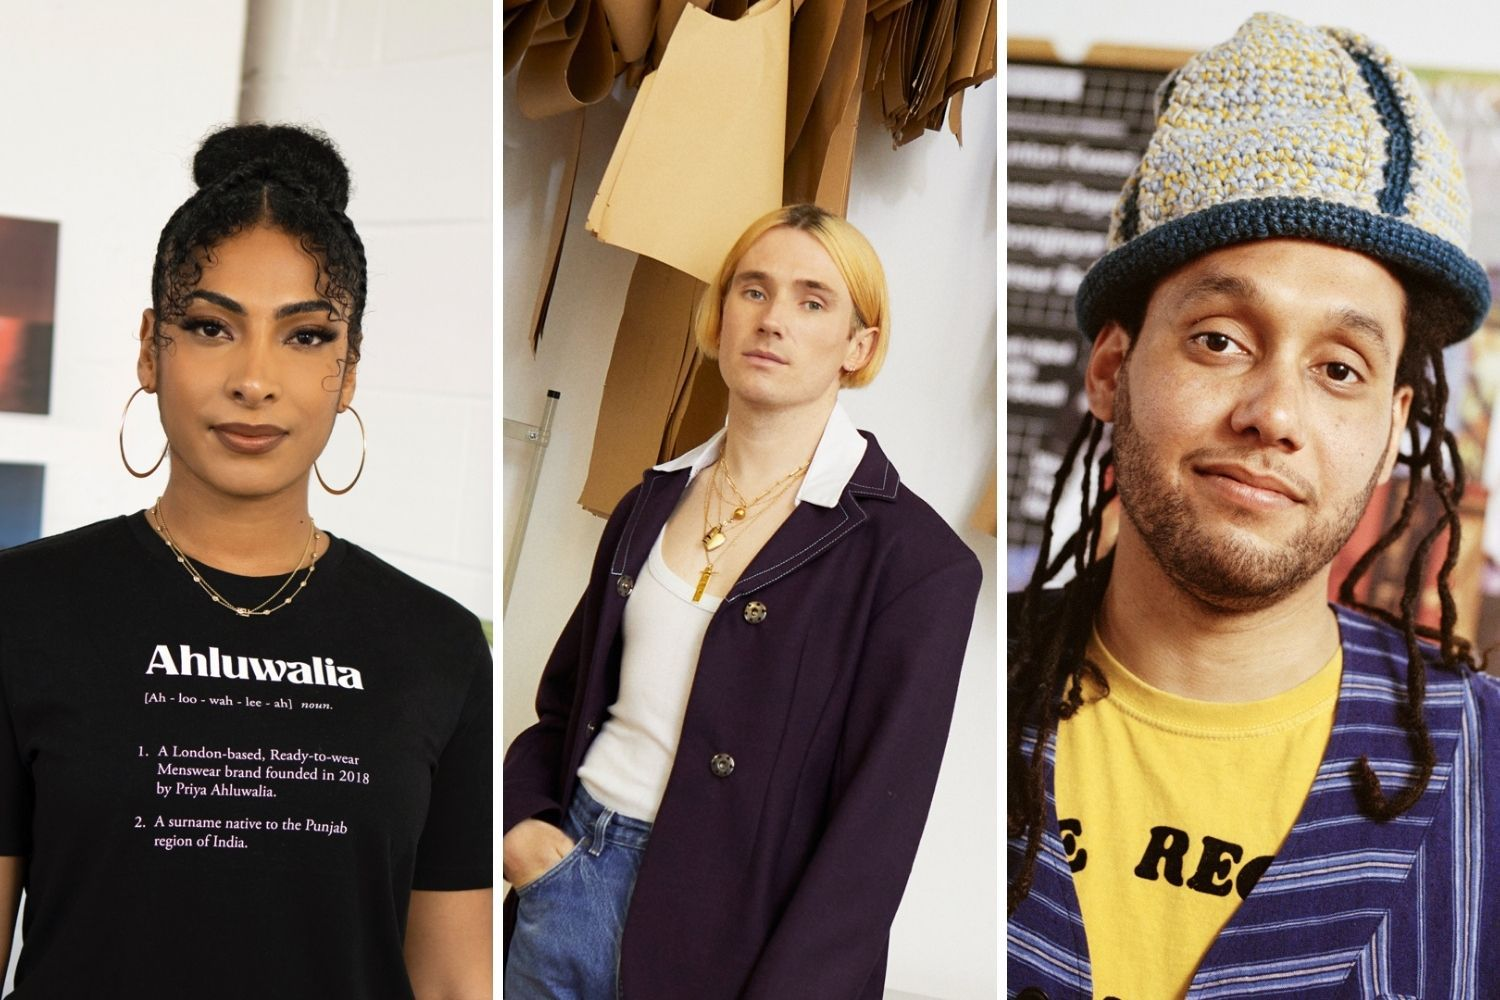 Mulberry collaborates with designers Priya Ahluwalia, Richard Malone and Nicholas Daley for 50th anniversary celebrations